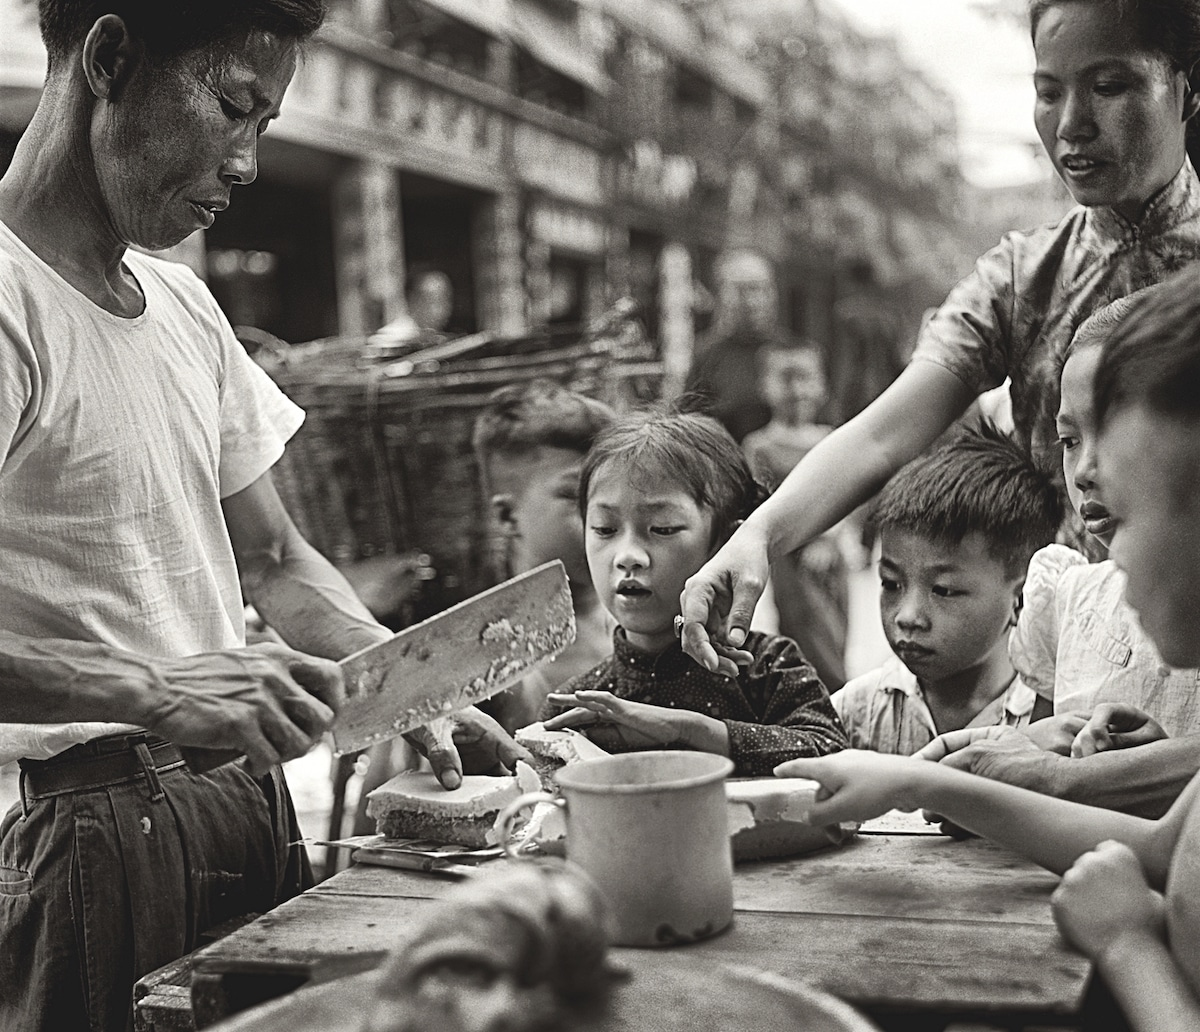 Street Photography from 1950's and 60's Hong Kong